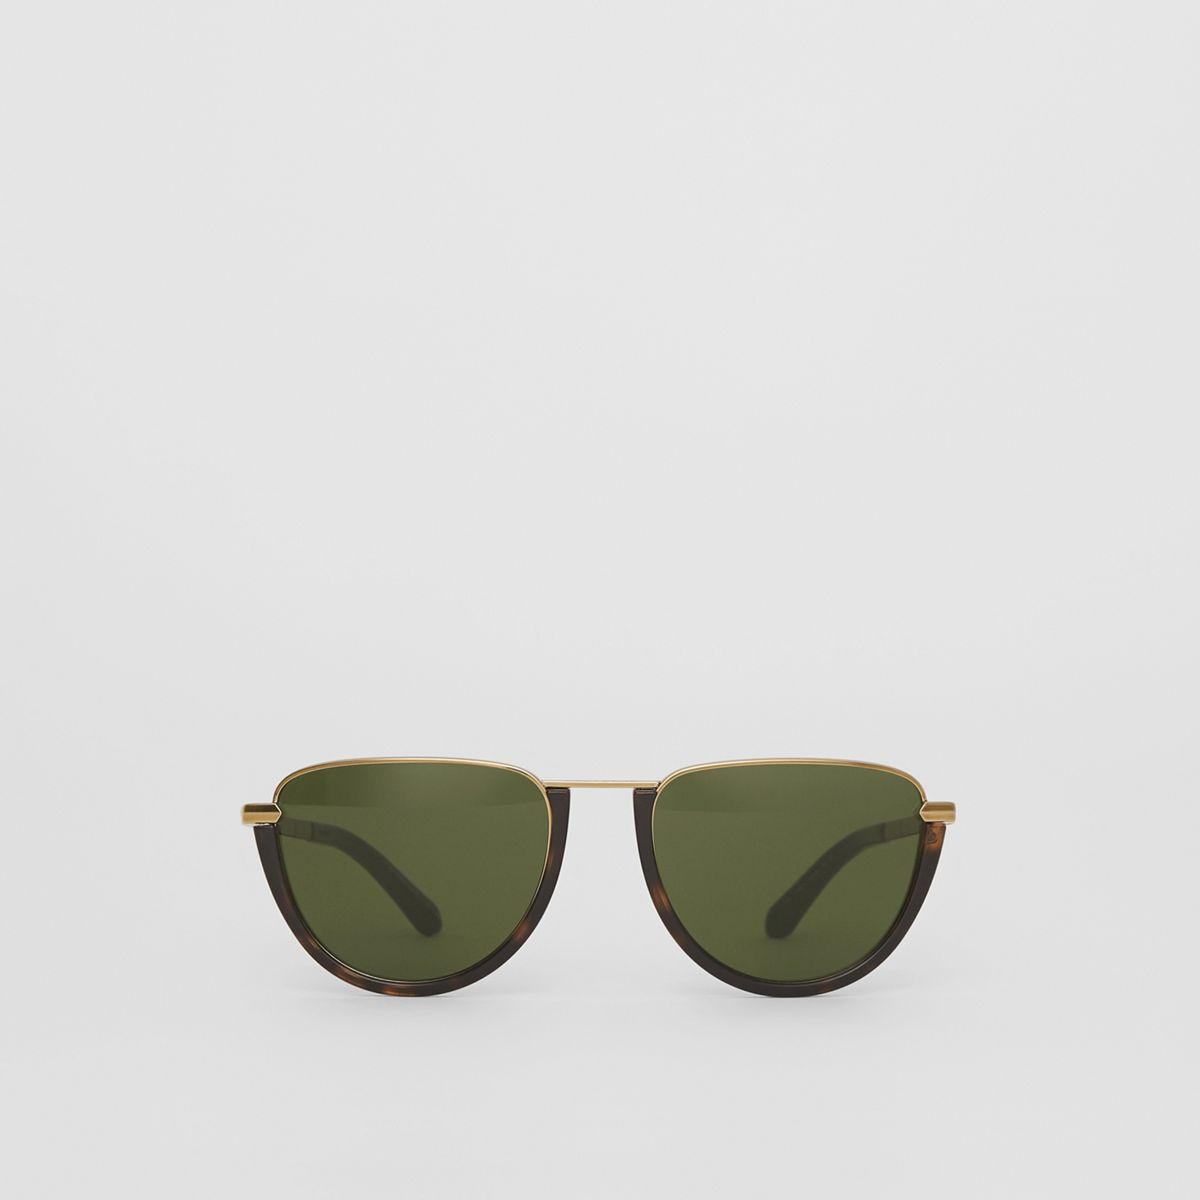 2bc453ac70 Burberry - Multicolor Half Moon Pilot Round Frame Sunglasses - Lyst. View  fullscreen